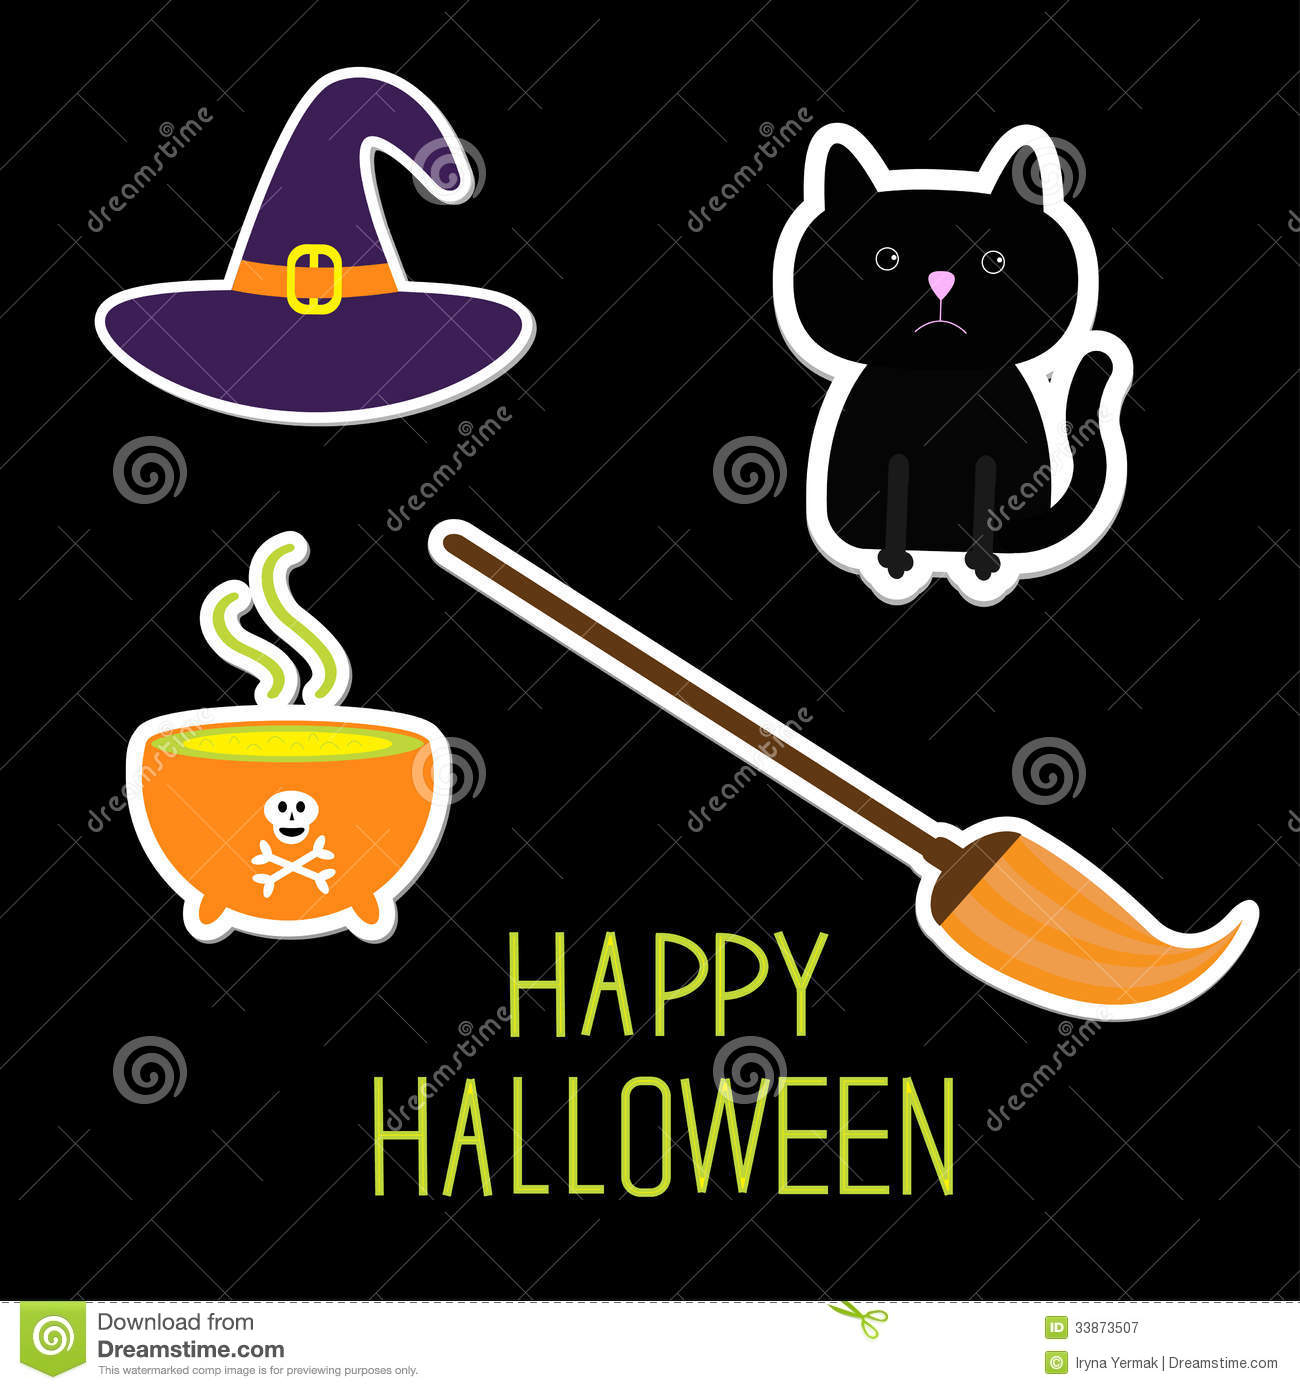 Cat In Fall Wallpaper Background Happy Halloween Witch Set Black Cat Hat Royalty Free